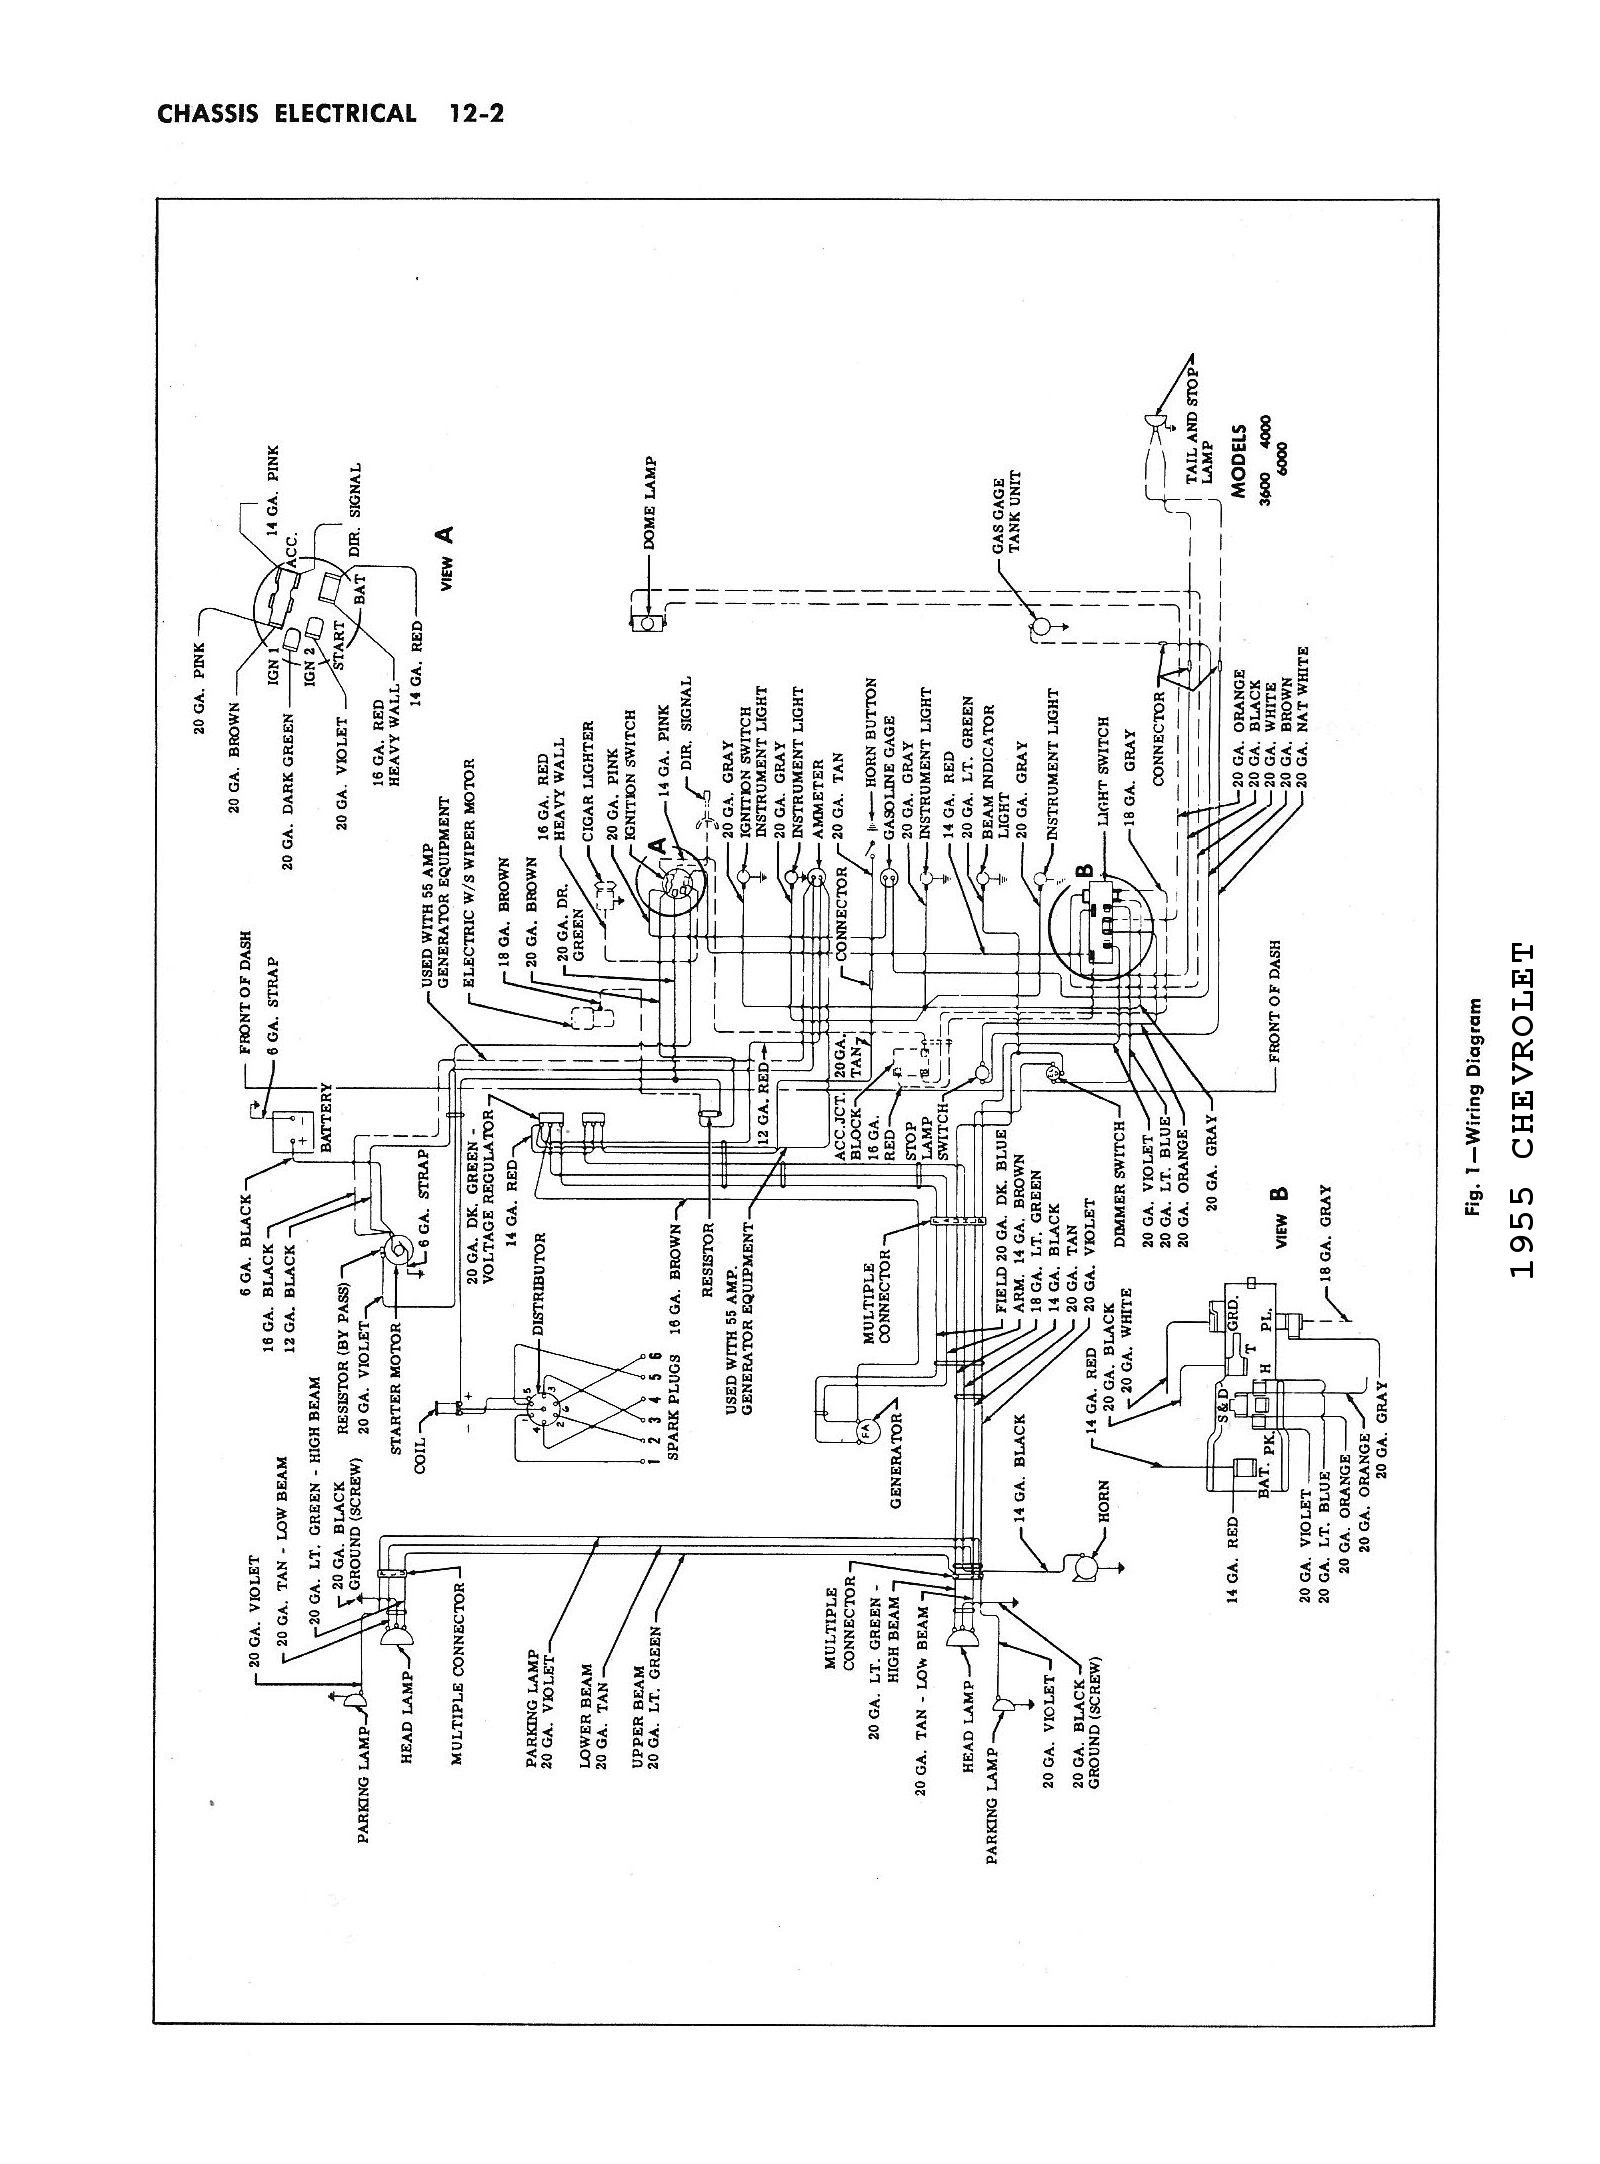 1955 1959 chevy truck wiring diagram